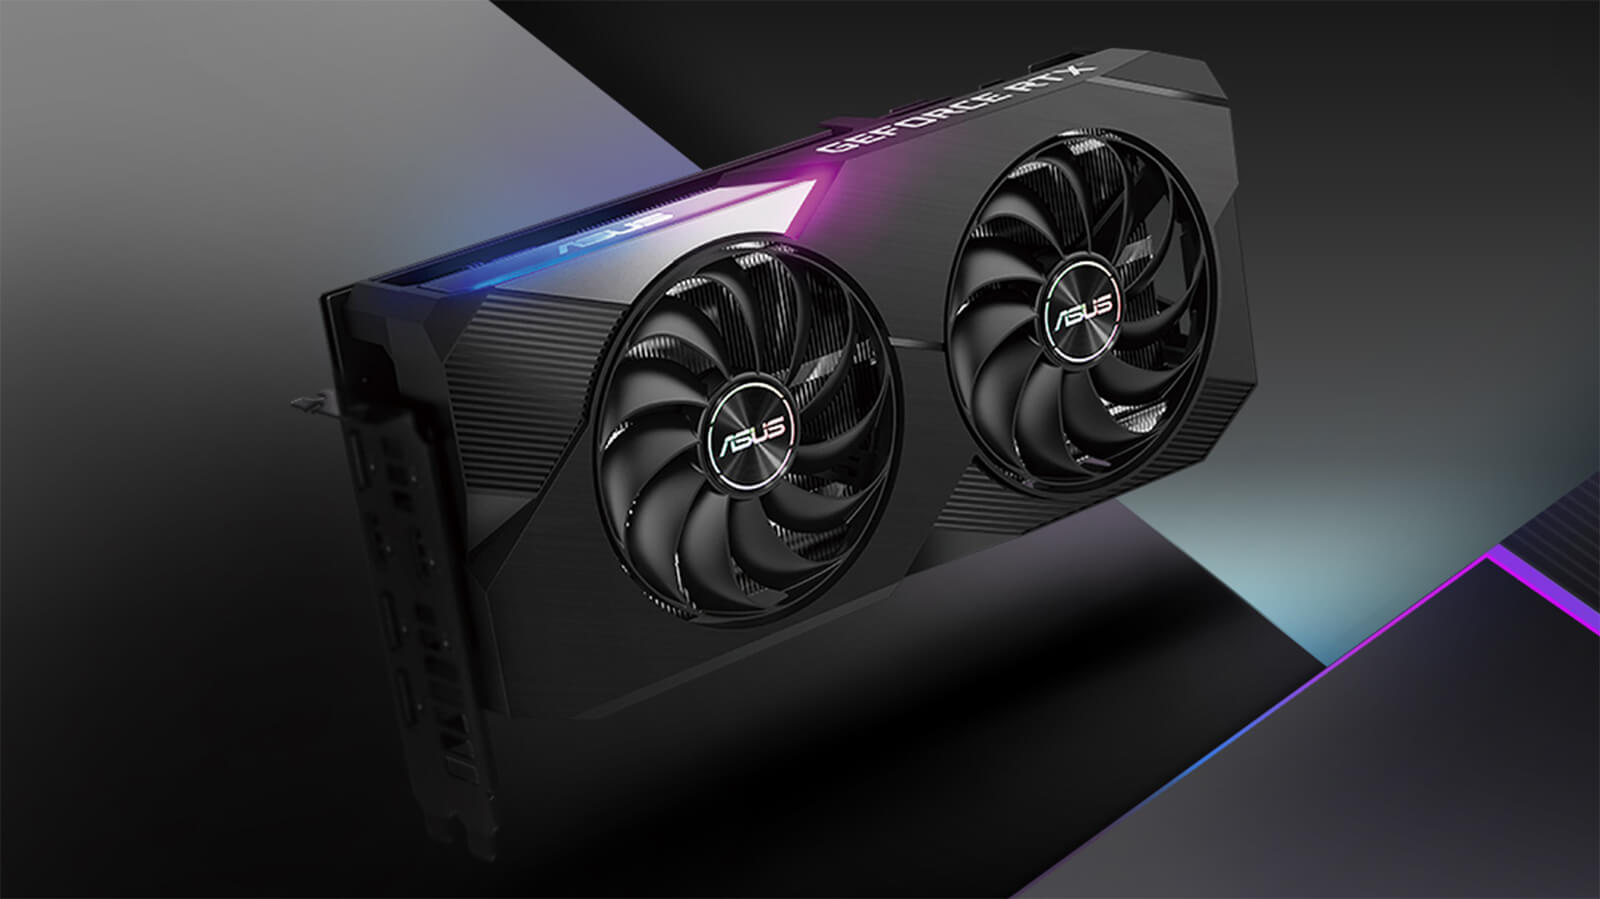 Asus Dual Geforce Rtx™ 3070 Features